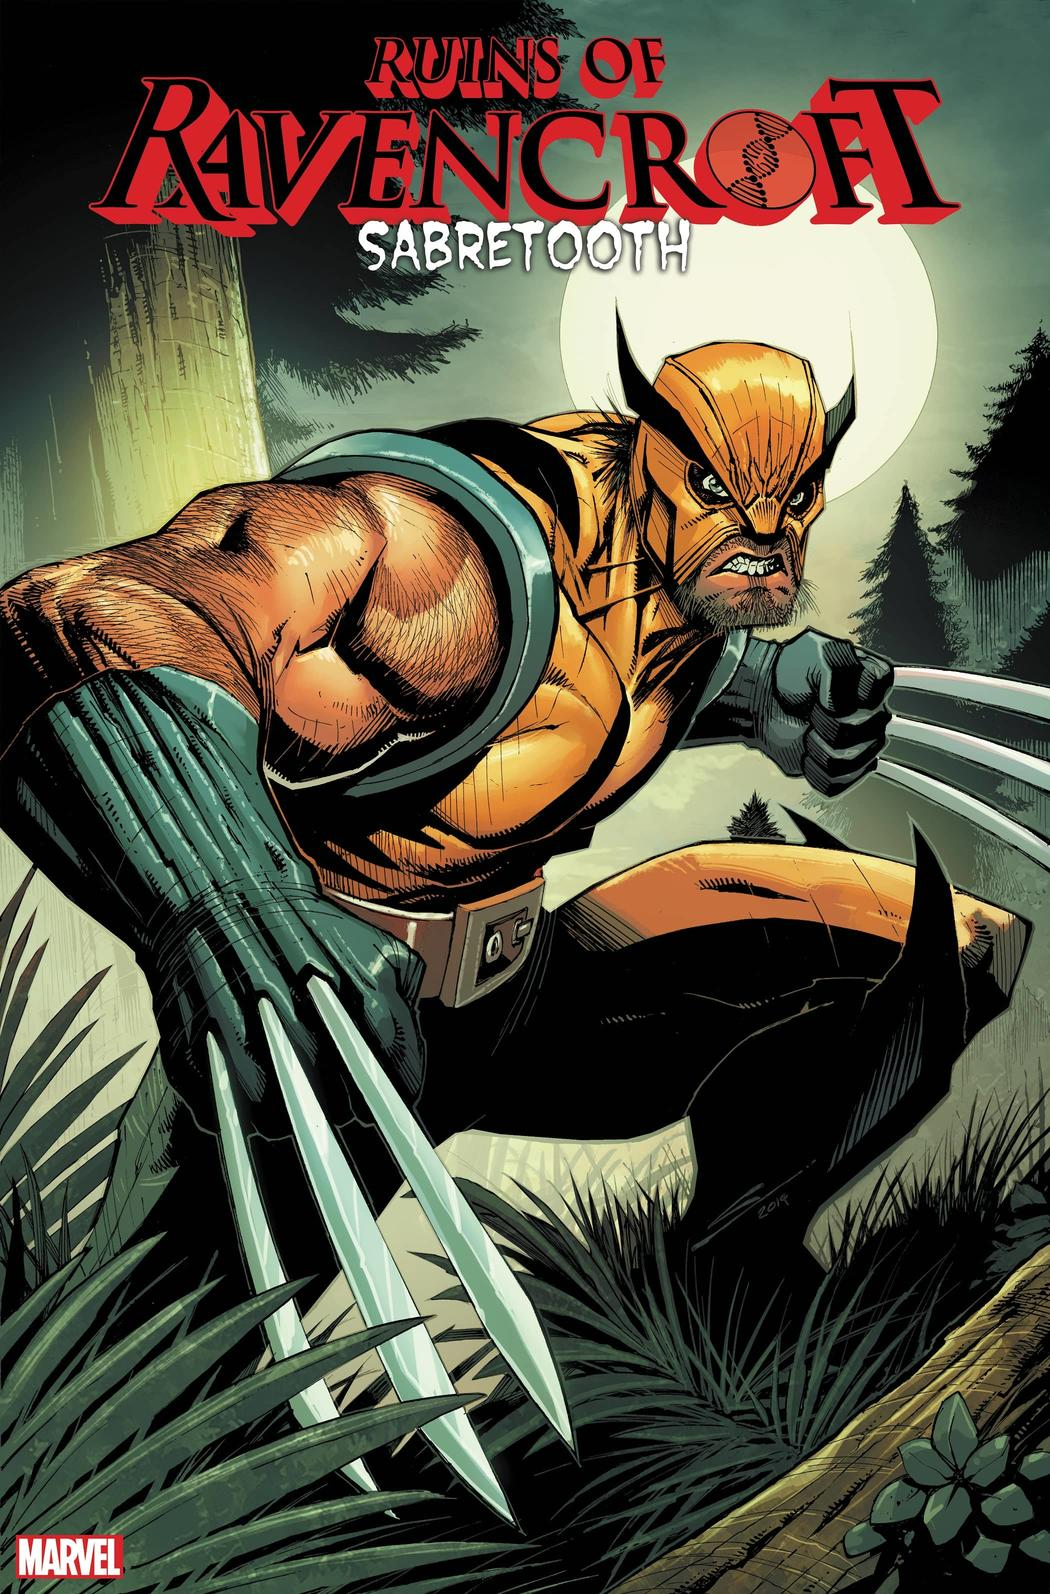 THE RUINS OF RAVENCROFT: SABRETOOTH #1